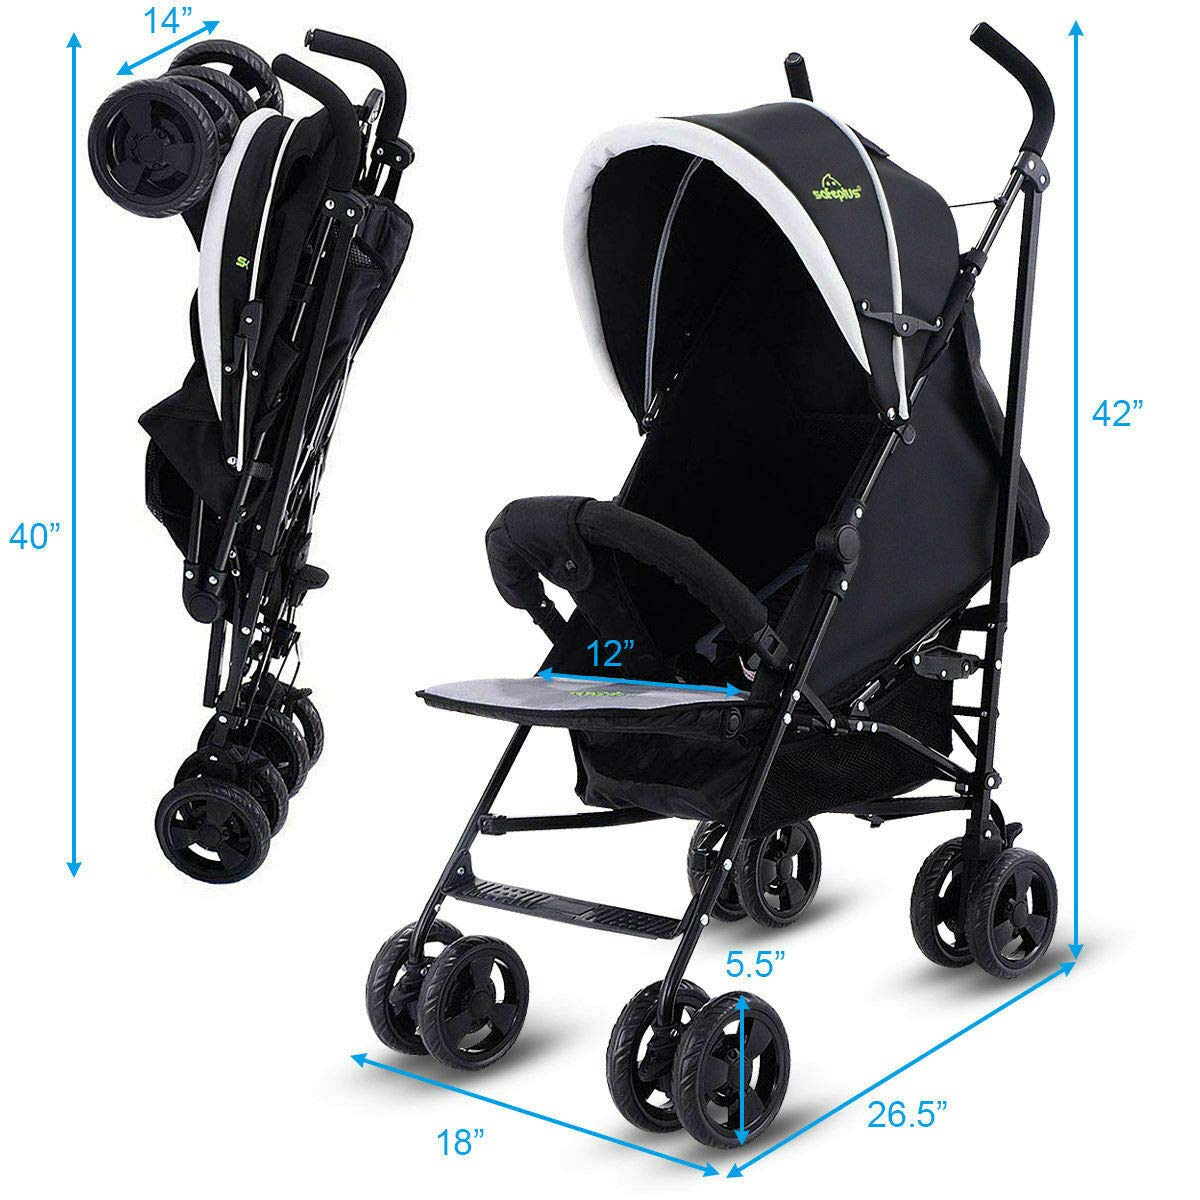 Kids Jogger Foldable Baby Stroller Buggy Travel Infant Pushchair Lightweight Eco-Friendly Material by Eosphorus BS (Image #6)